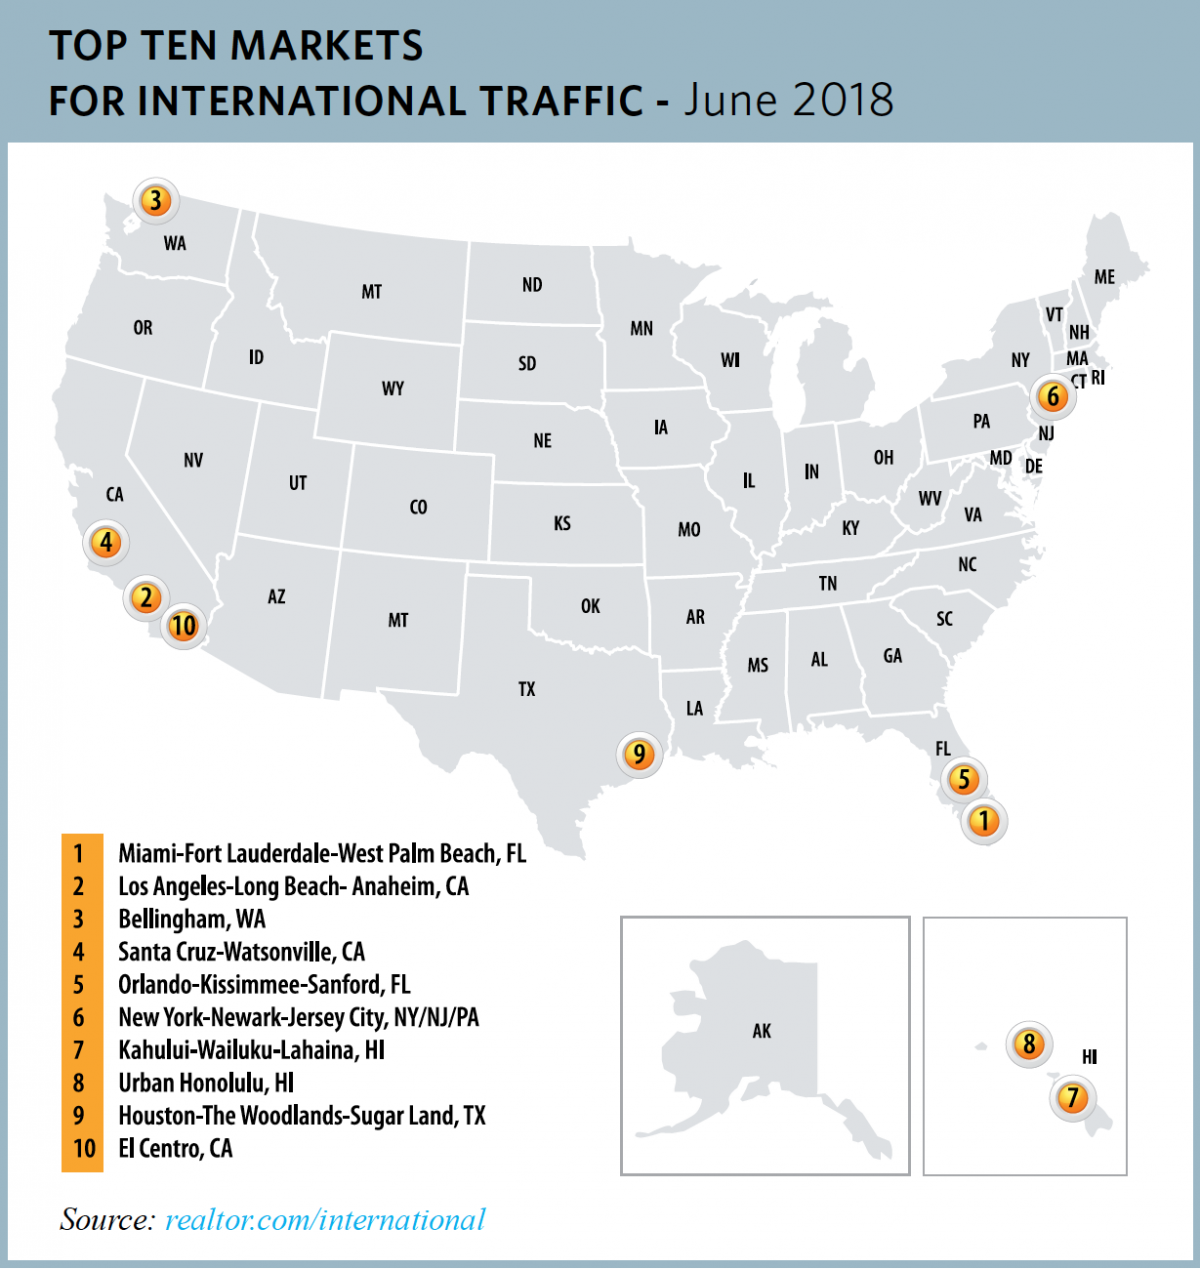 Map of the U.S.: Top Ten Markets for International Traffic